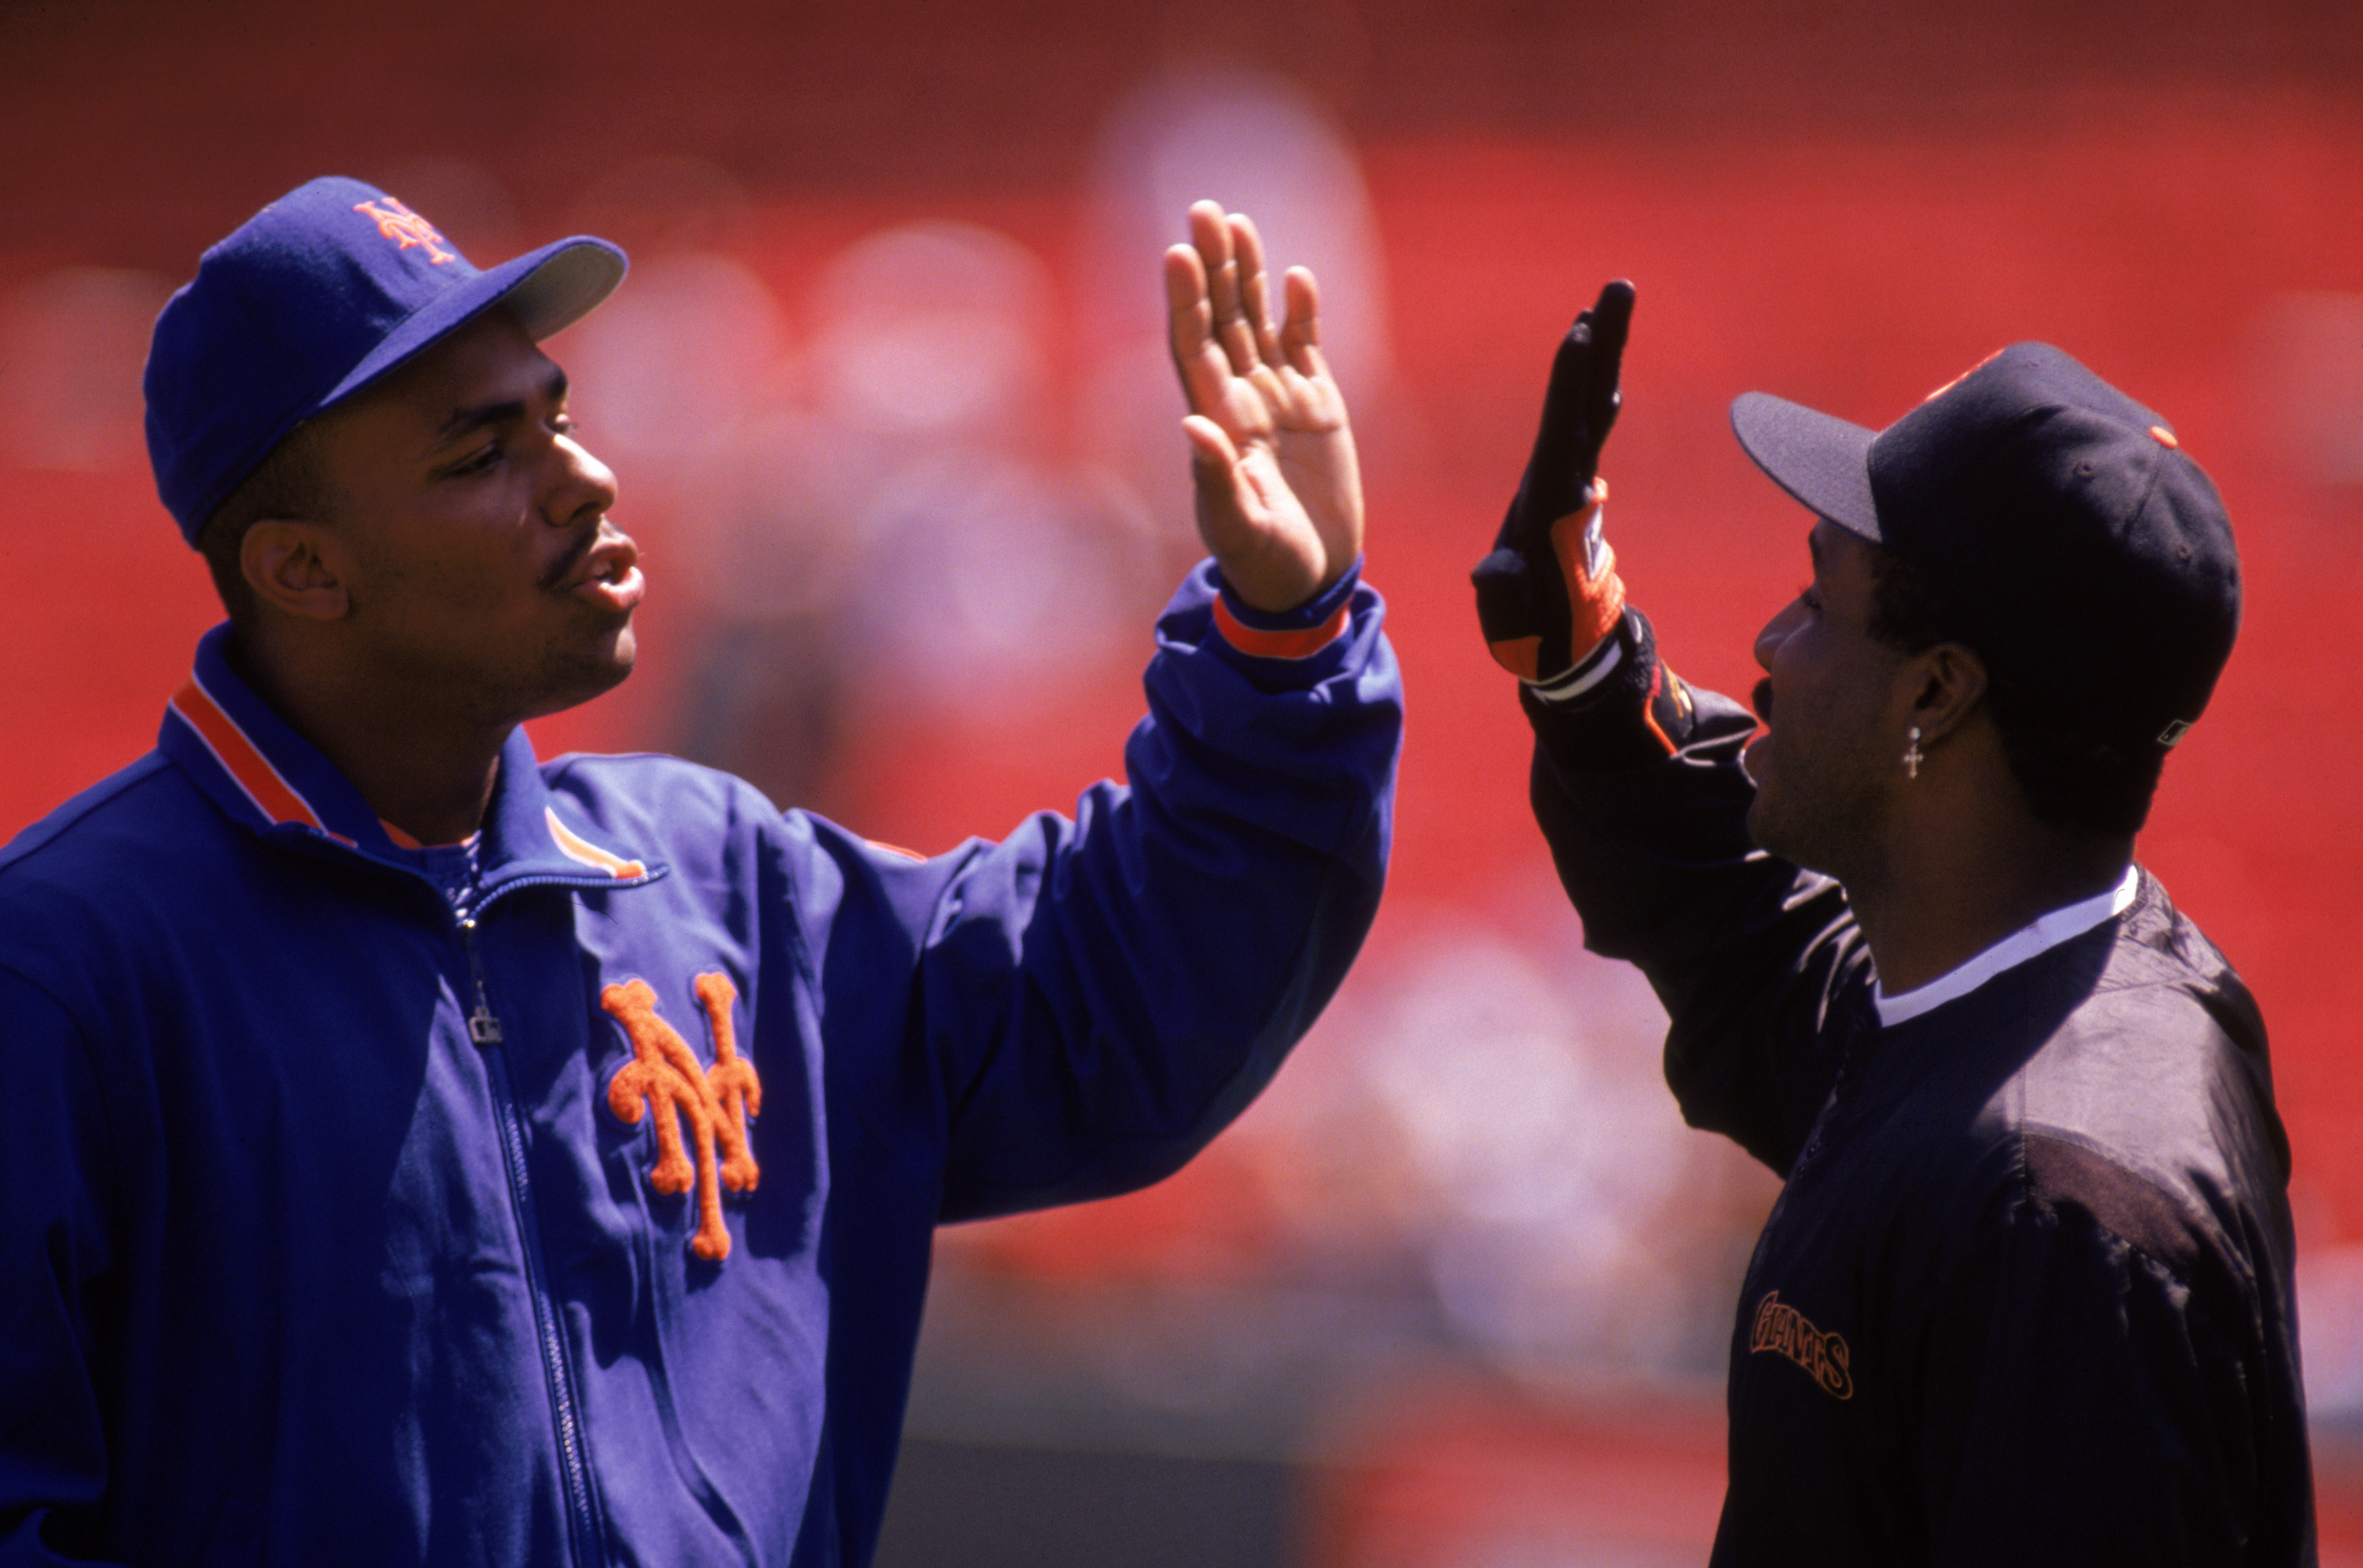 July 1 is Bobby Bonilla Day. The former Met will bank over $1 million today, which is more than Patrick Mahomes is due in 2020 base salary.